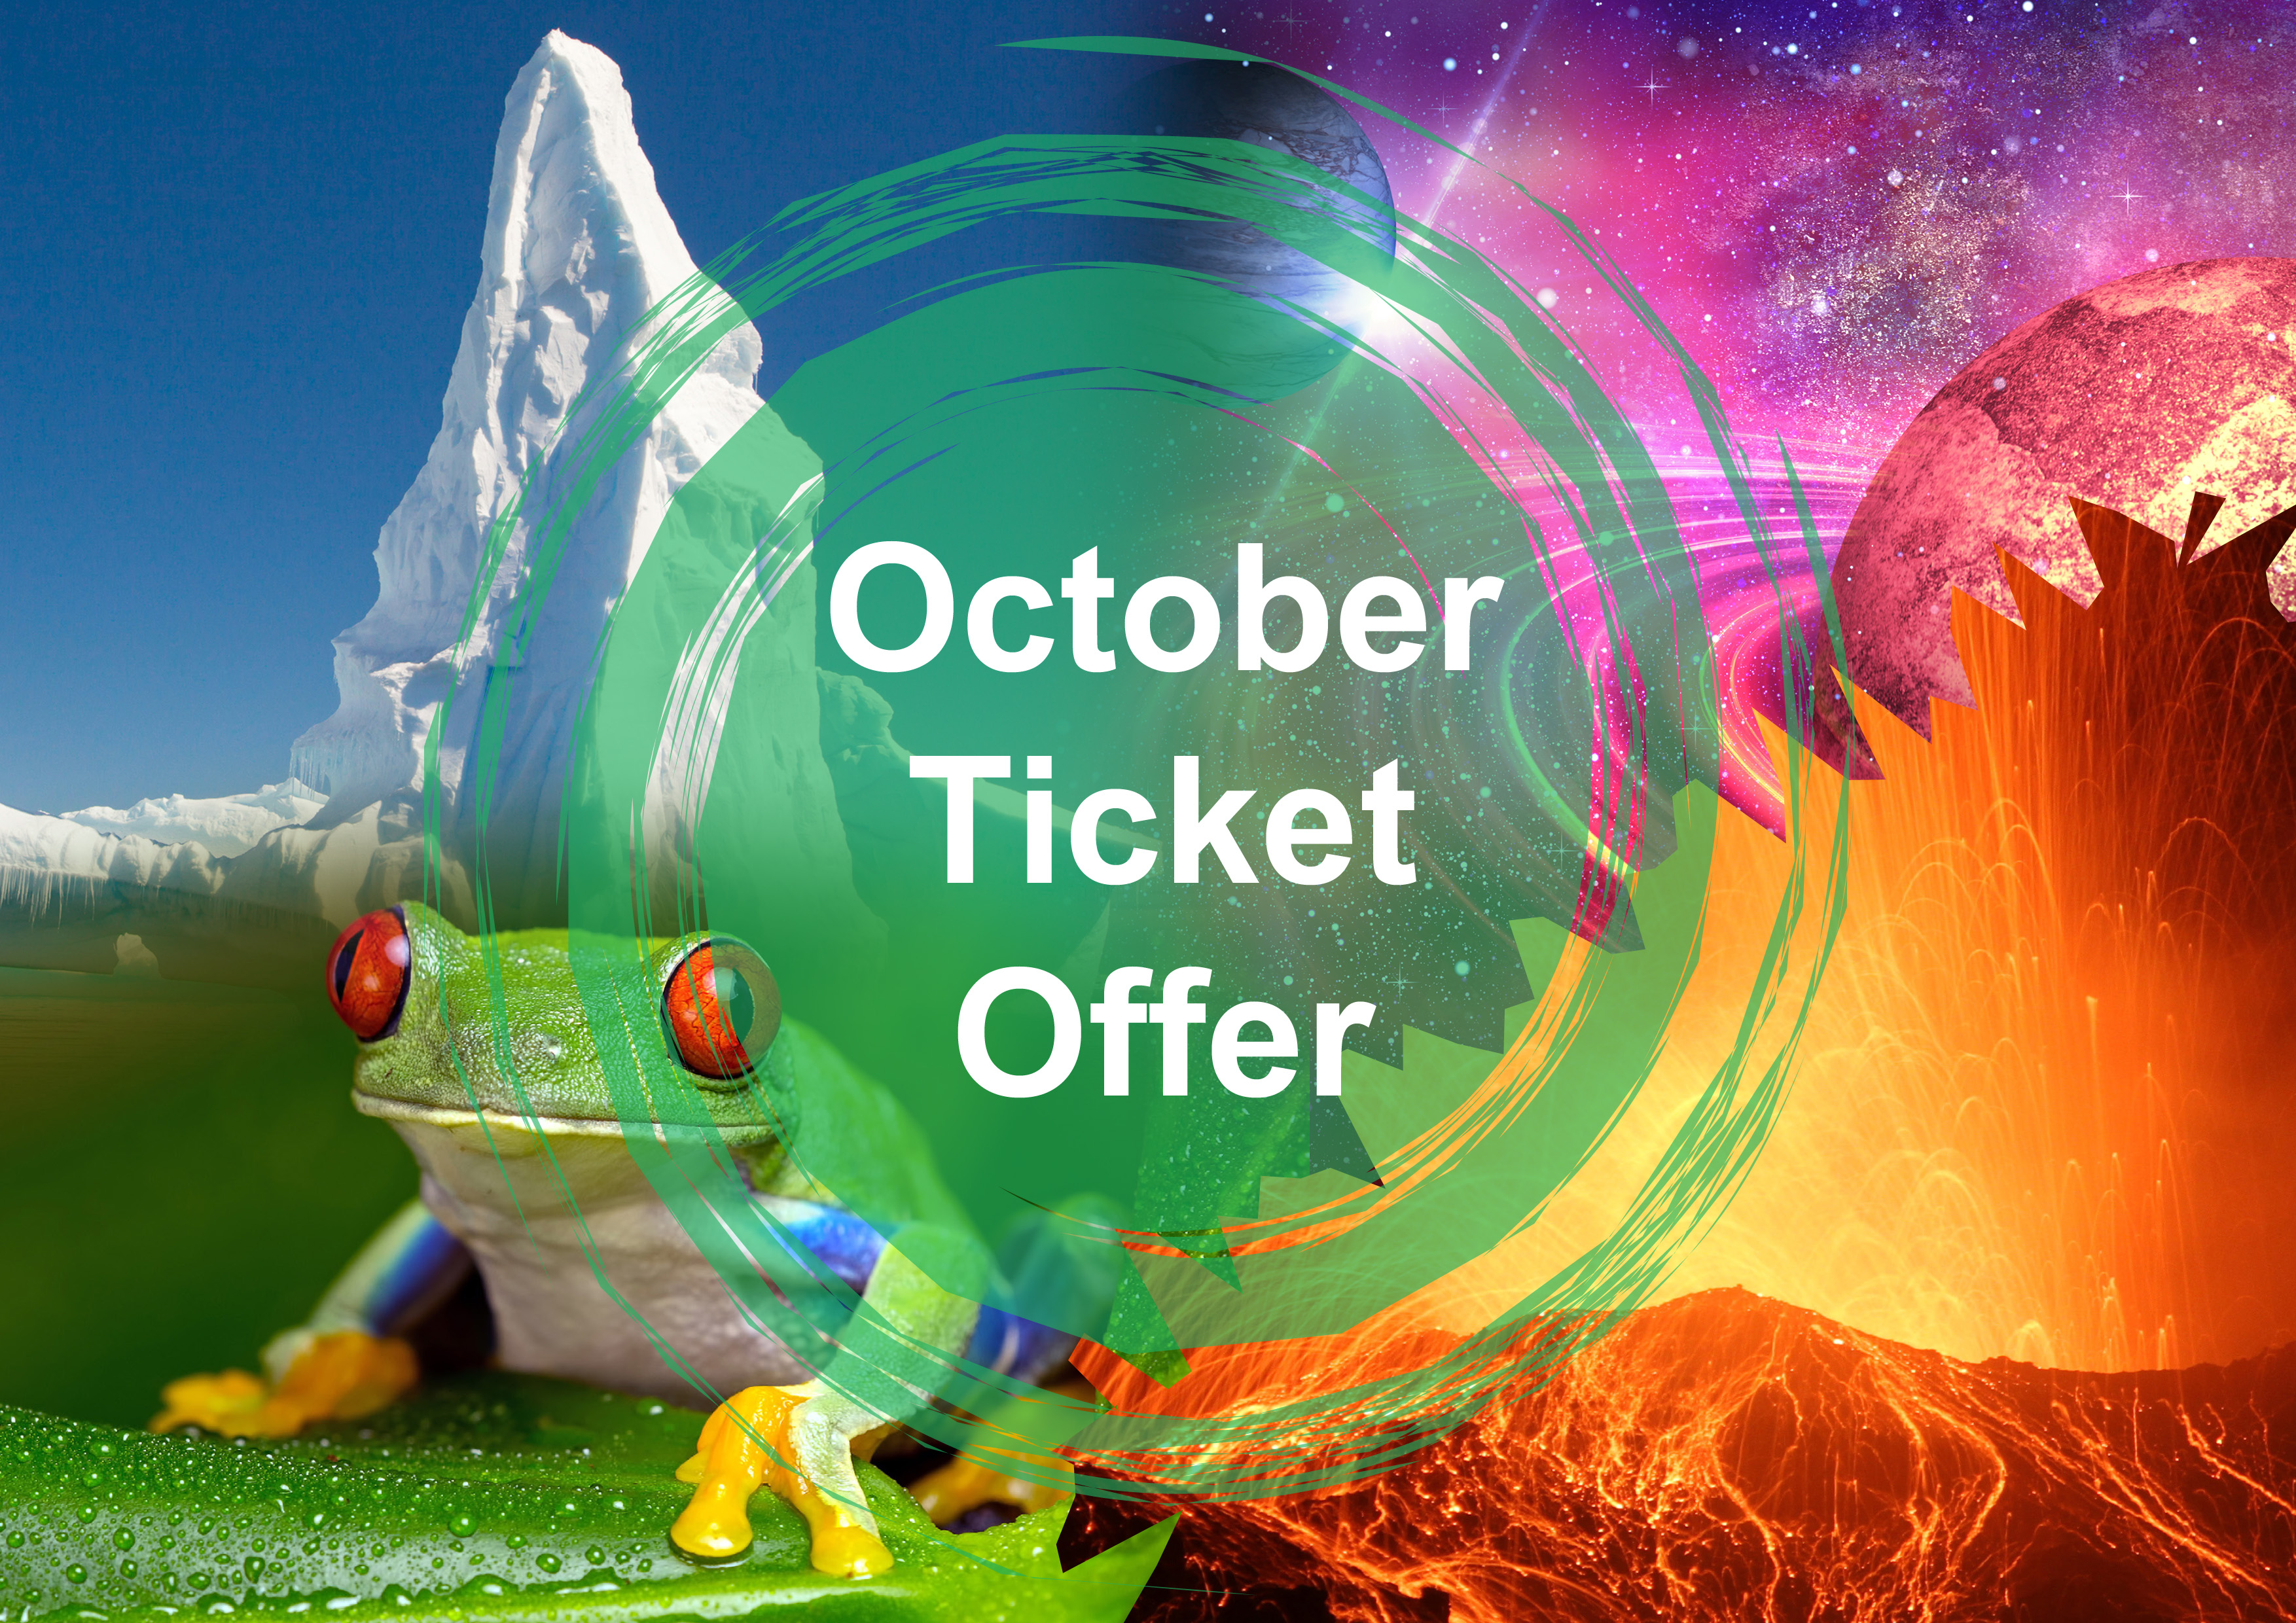 October Ticket Offer day 22